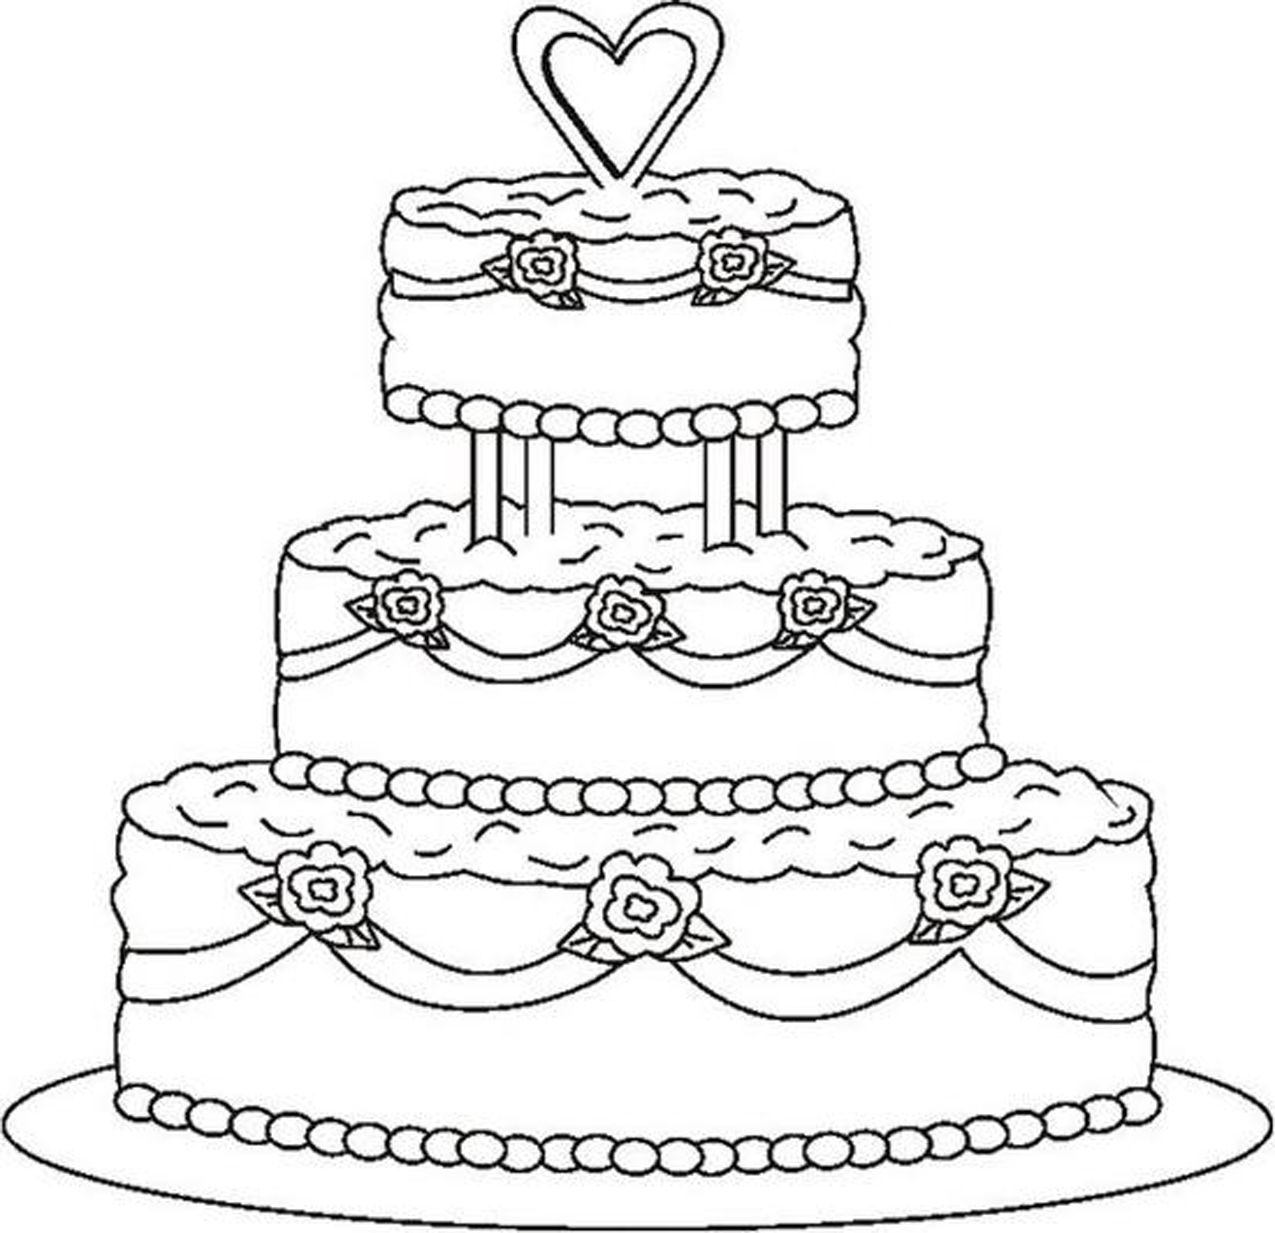 Coloring Pages Of Cakes Cupcakes Famous Cake Coloring